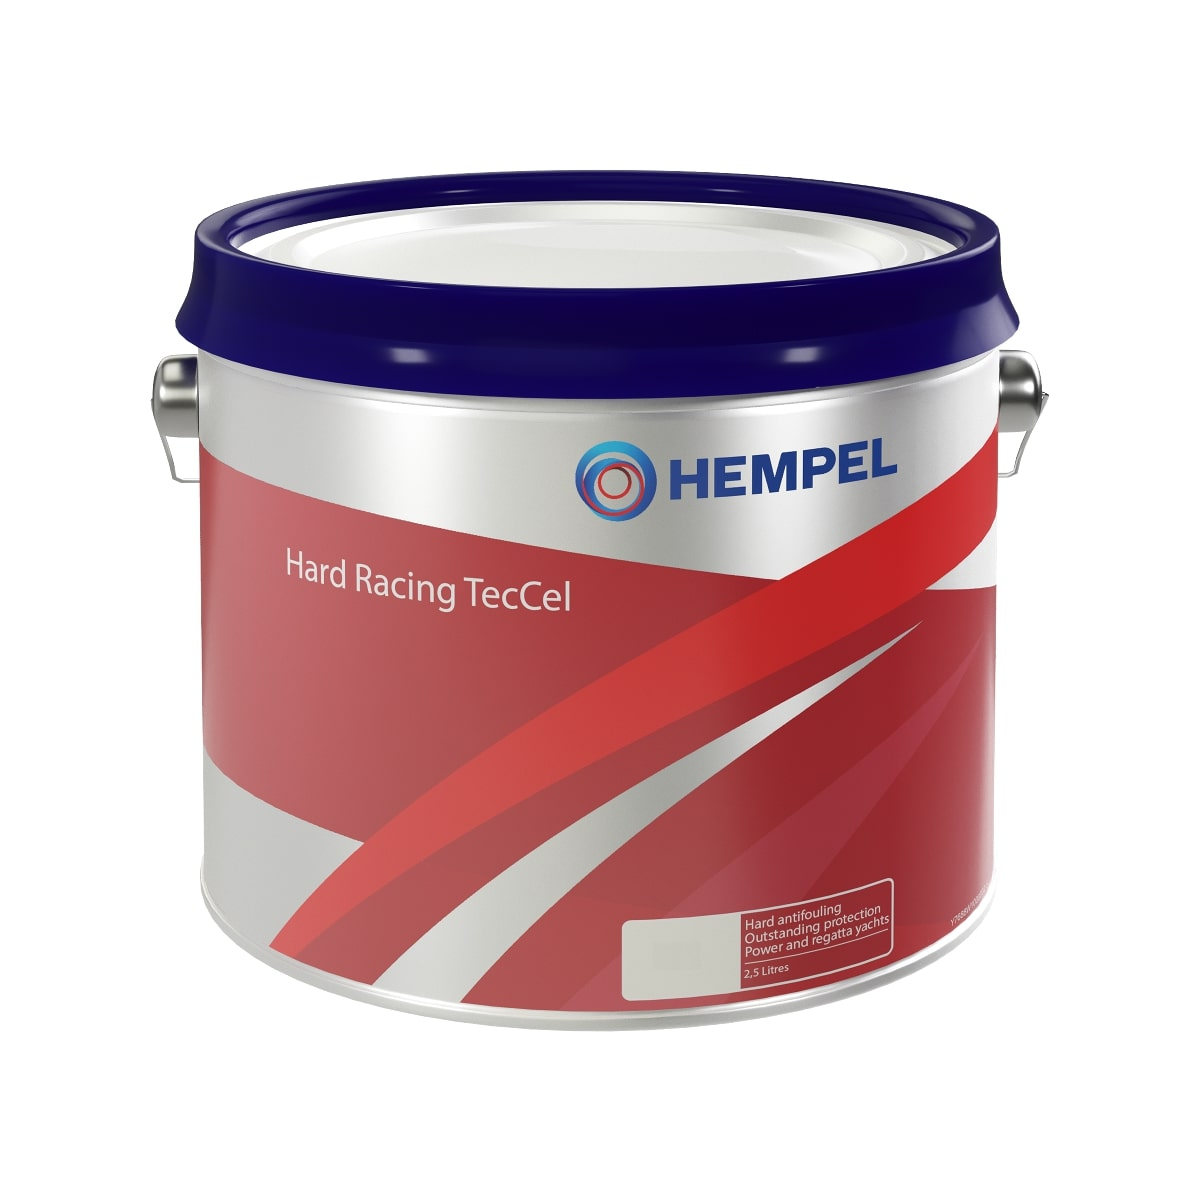 HEMPEL Antifouling Hard Racing TecCel